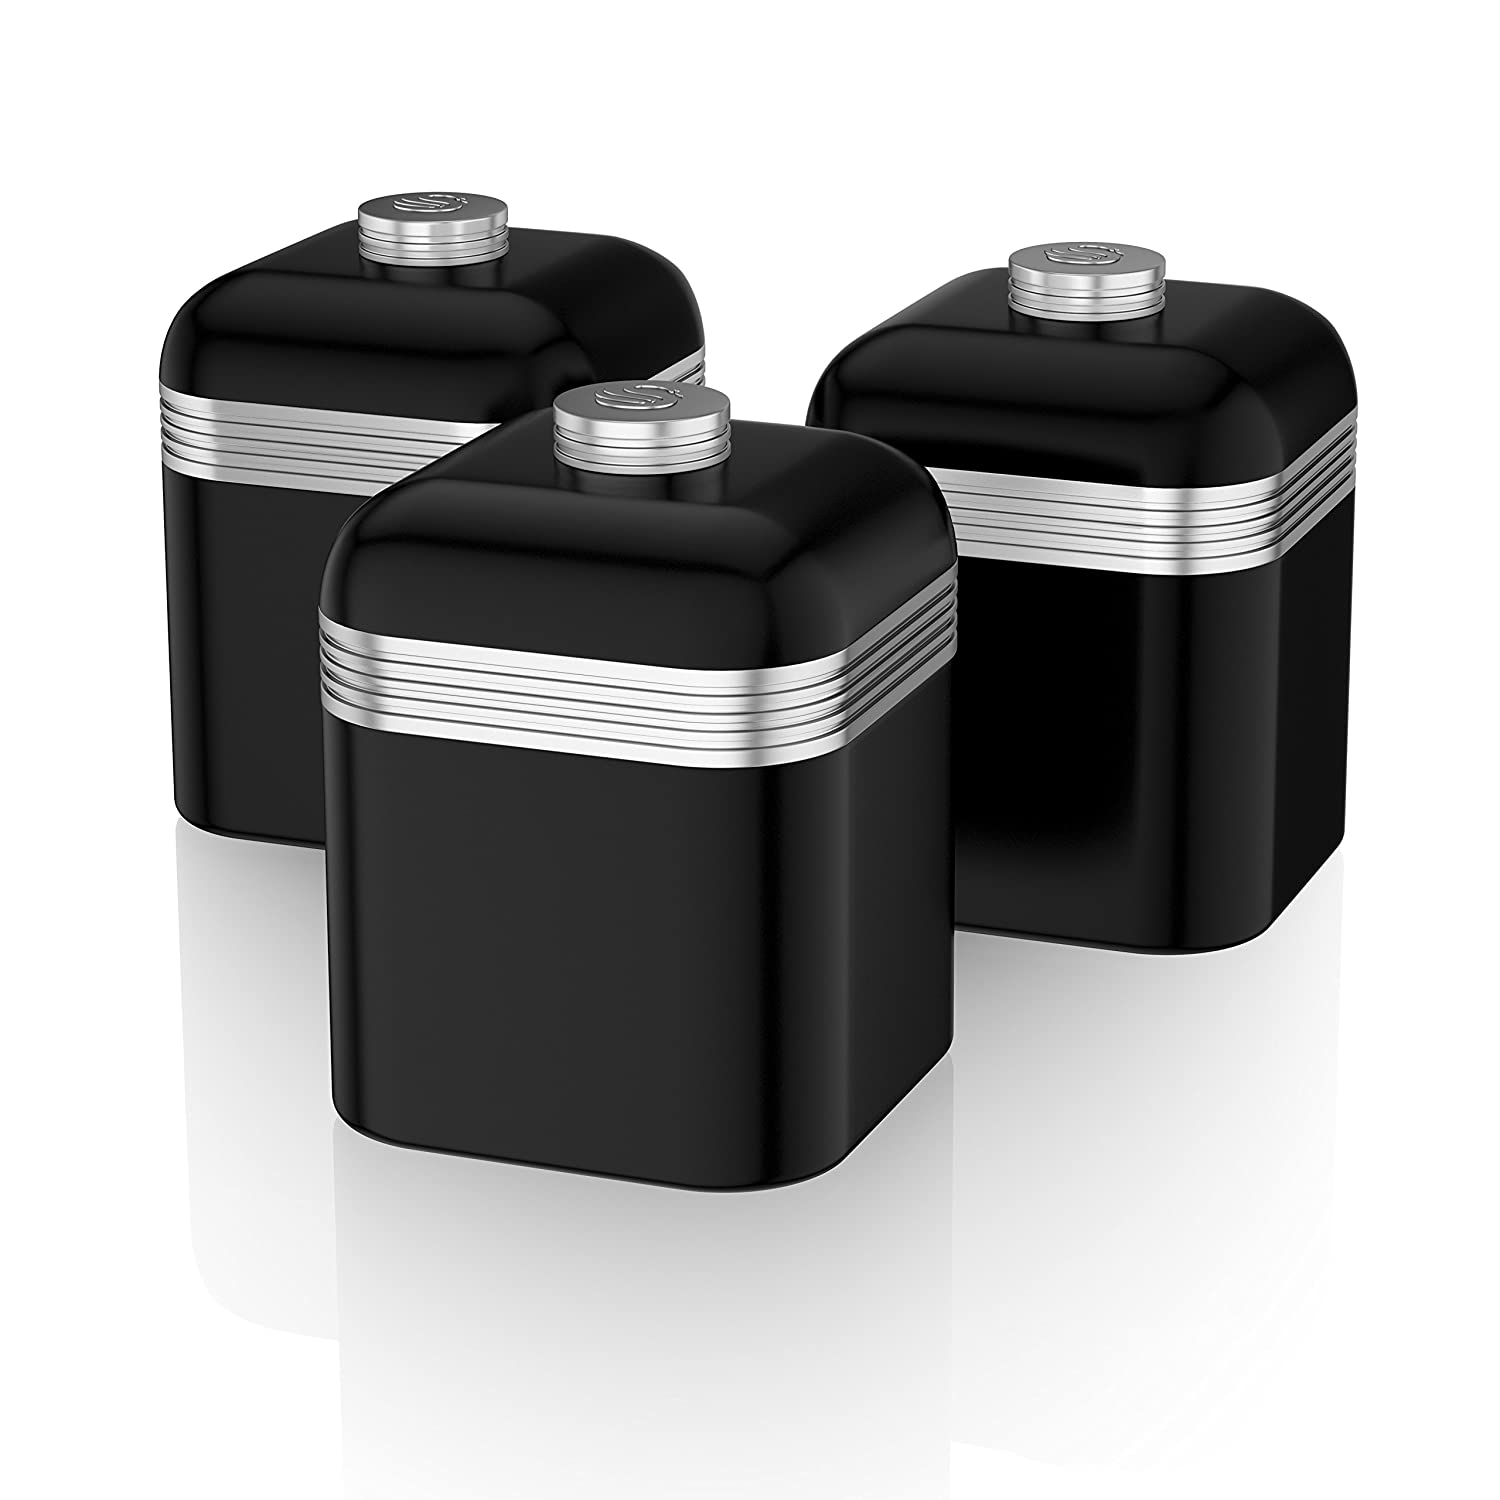 100 black kitchen canister set 100 ceramic kitchen